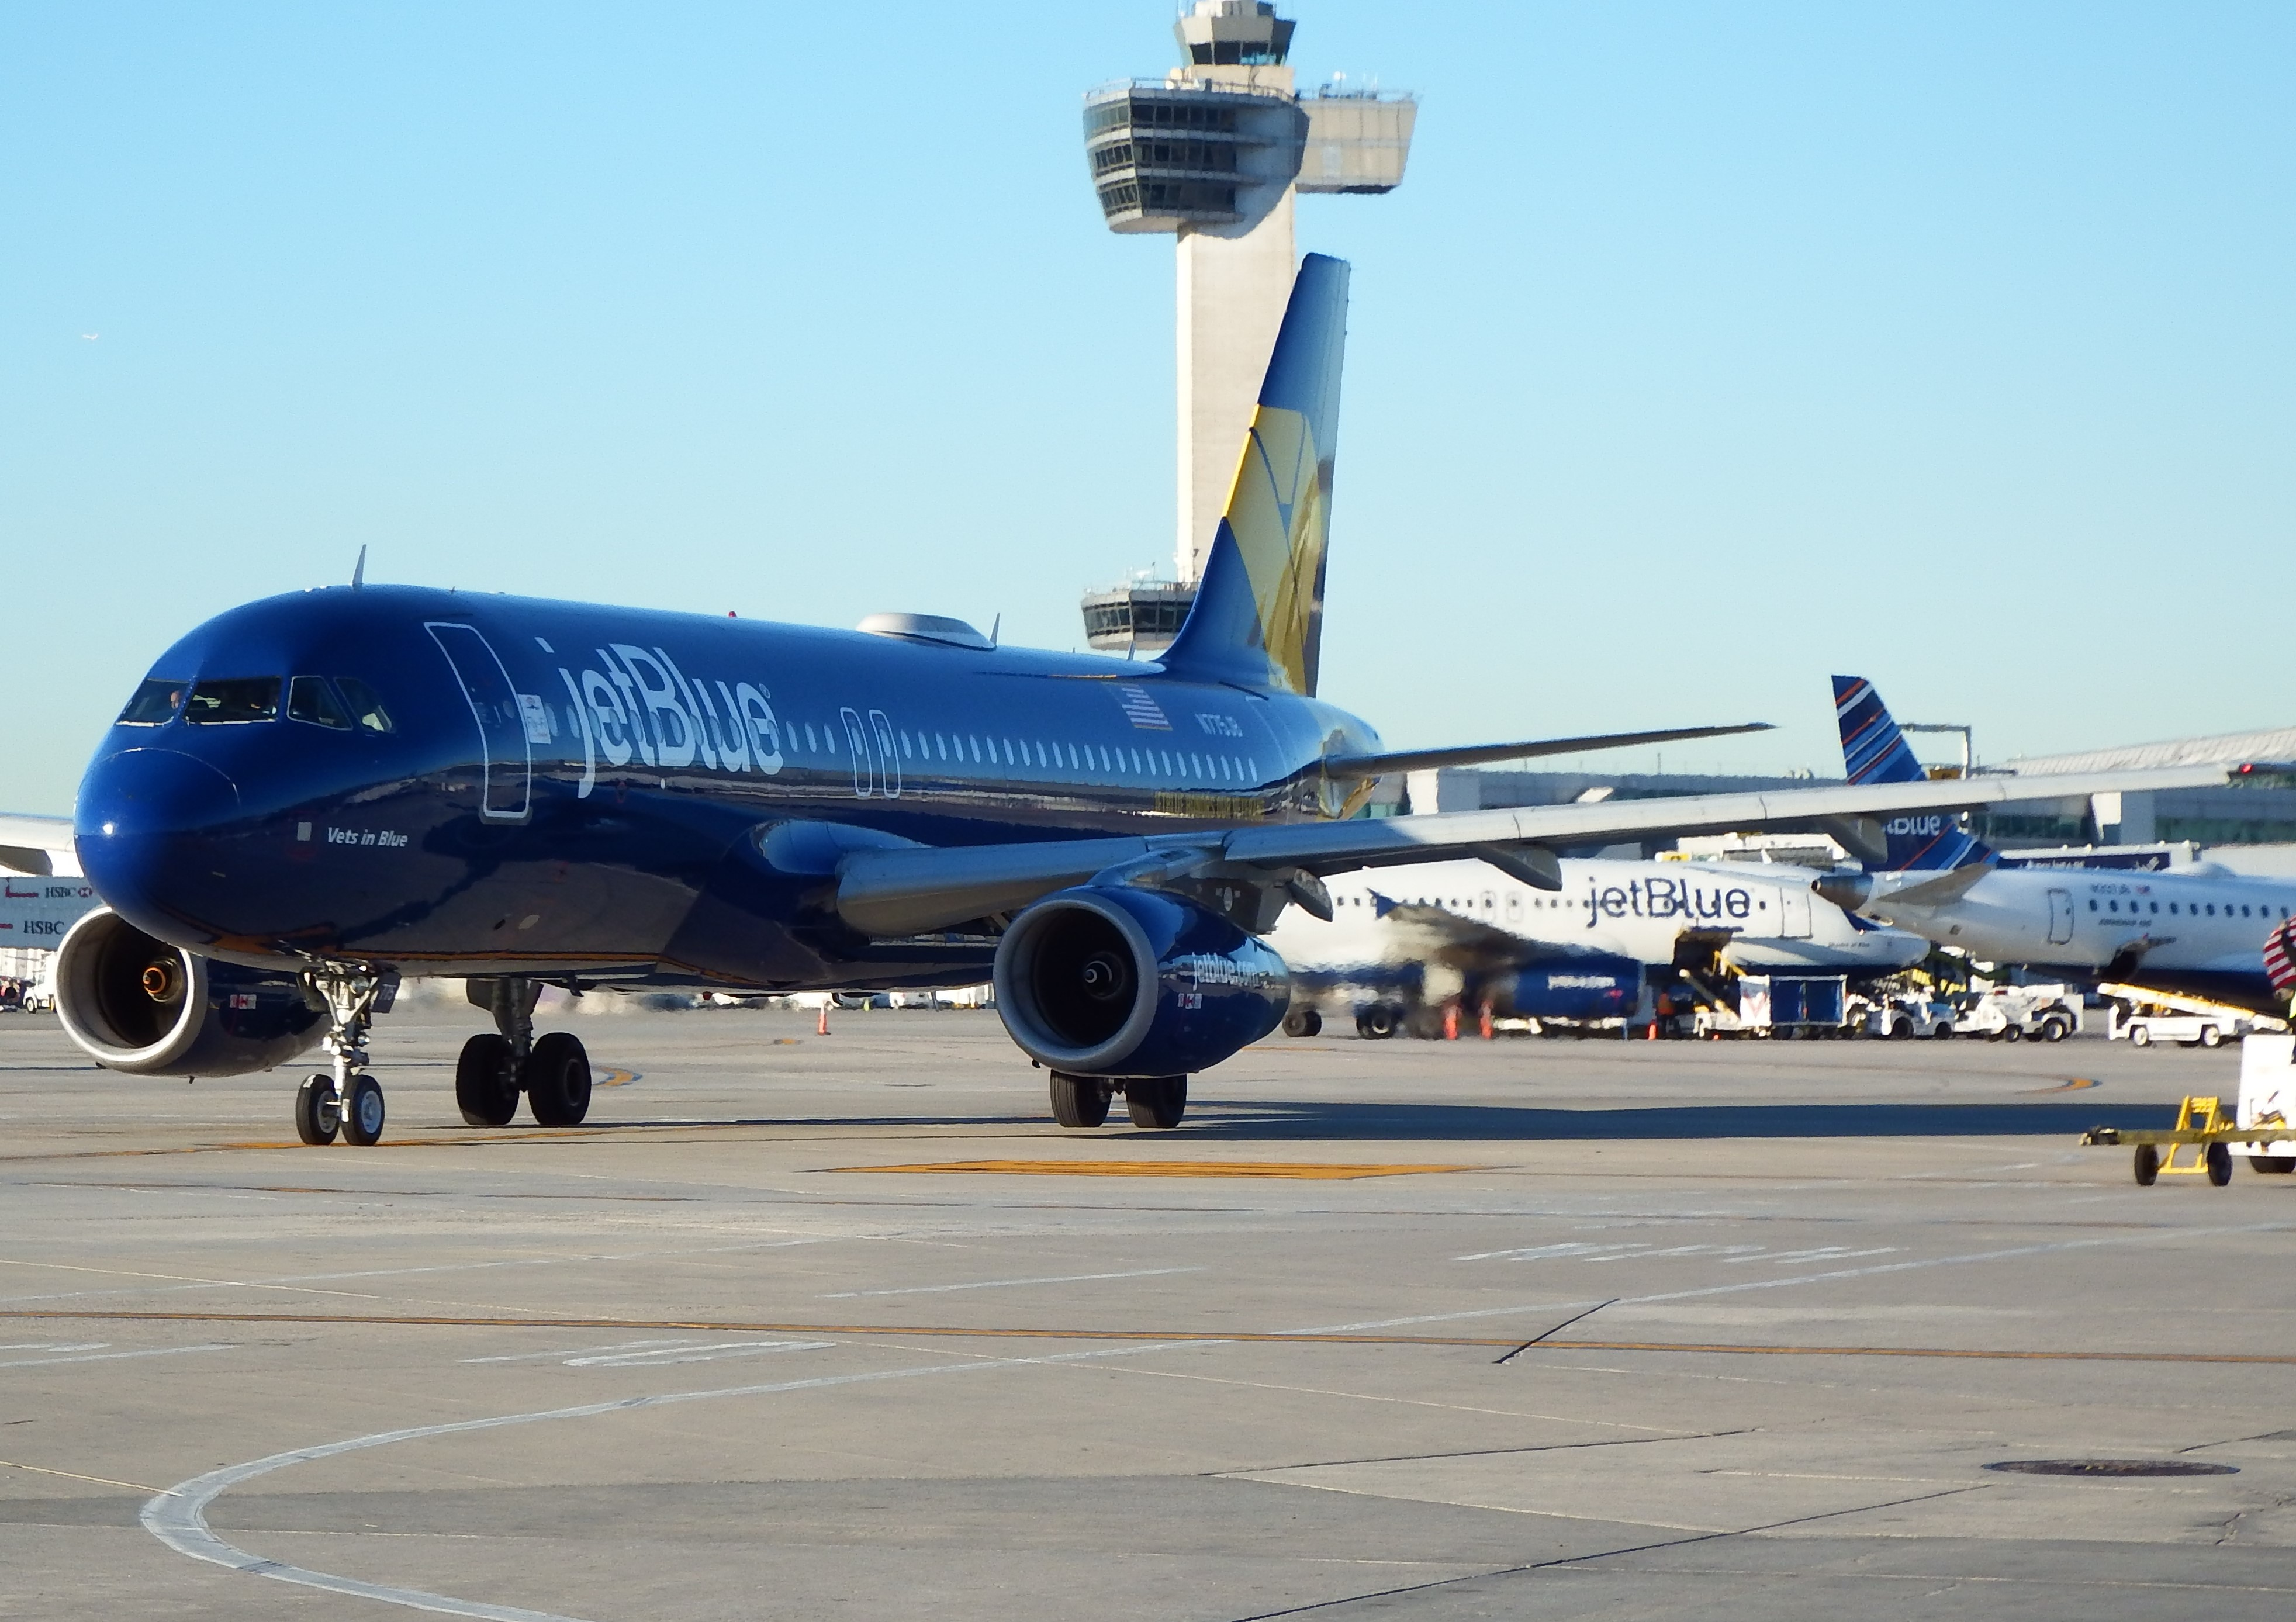 jetBlue airplane on runway with control tower